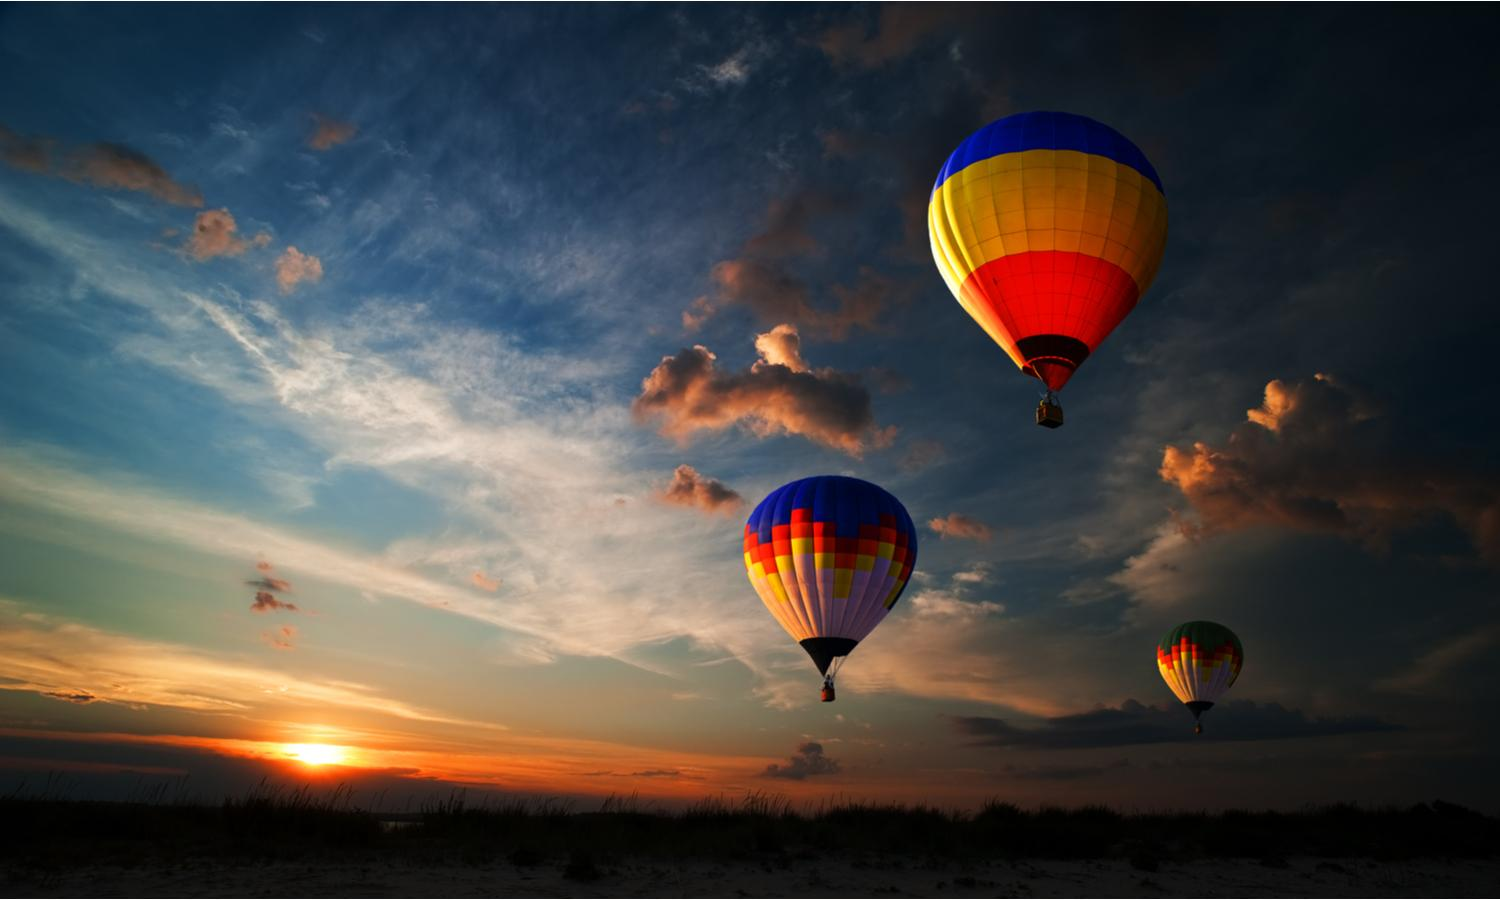 Picture This Daylesford Ballooning